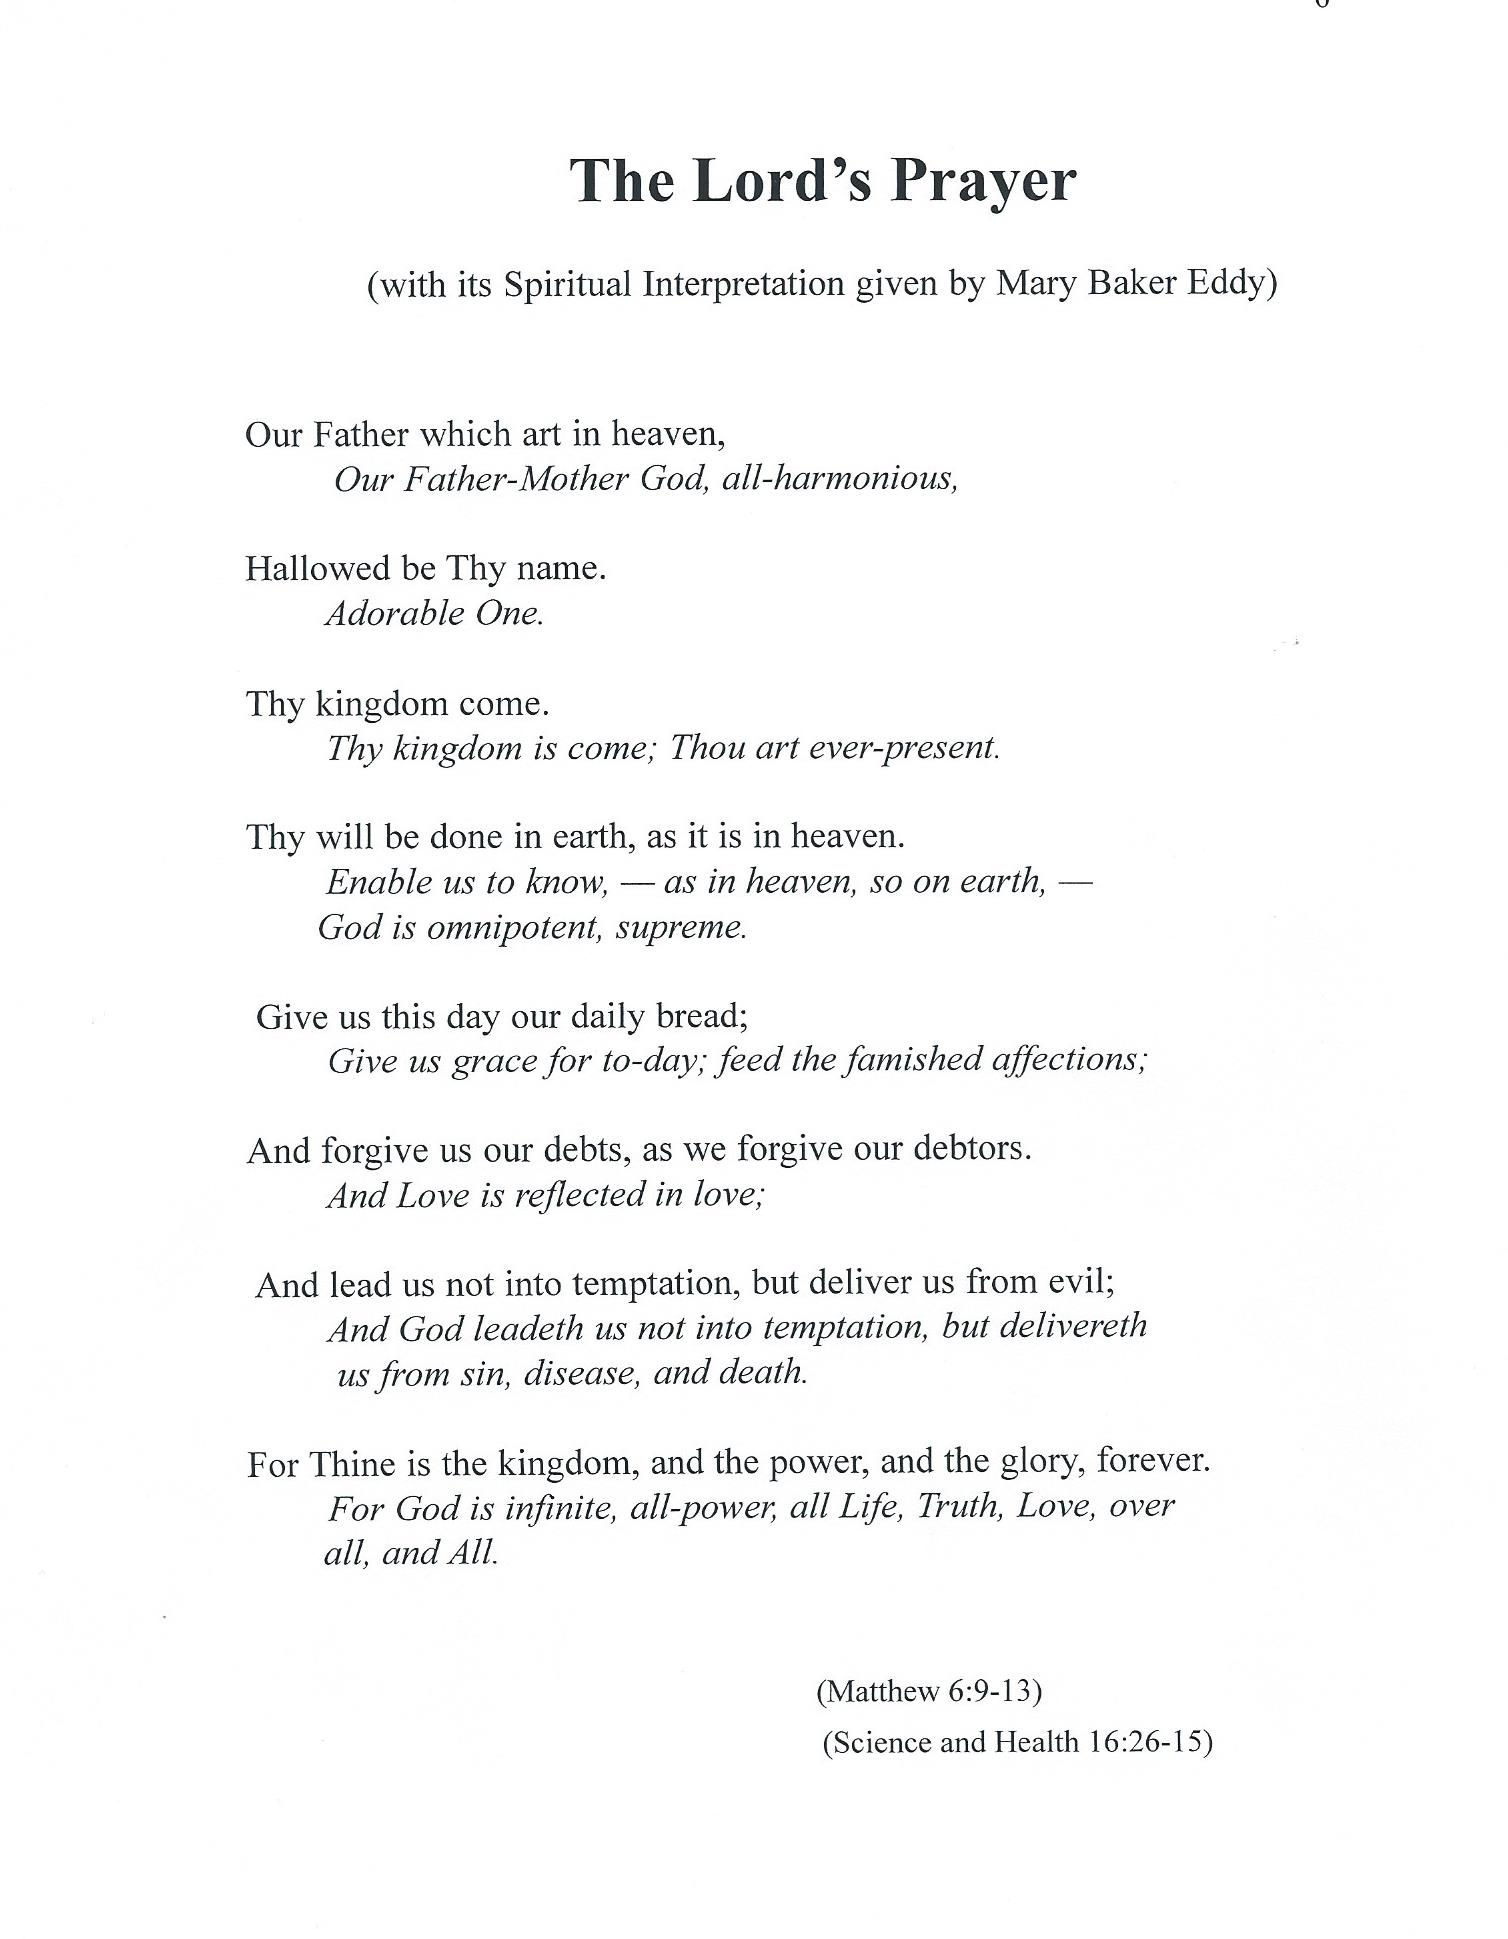 Words Of The Lord S Prayer With Its Spiritual